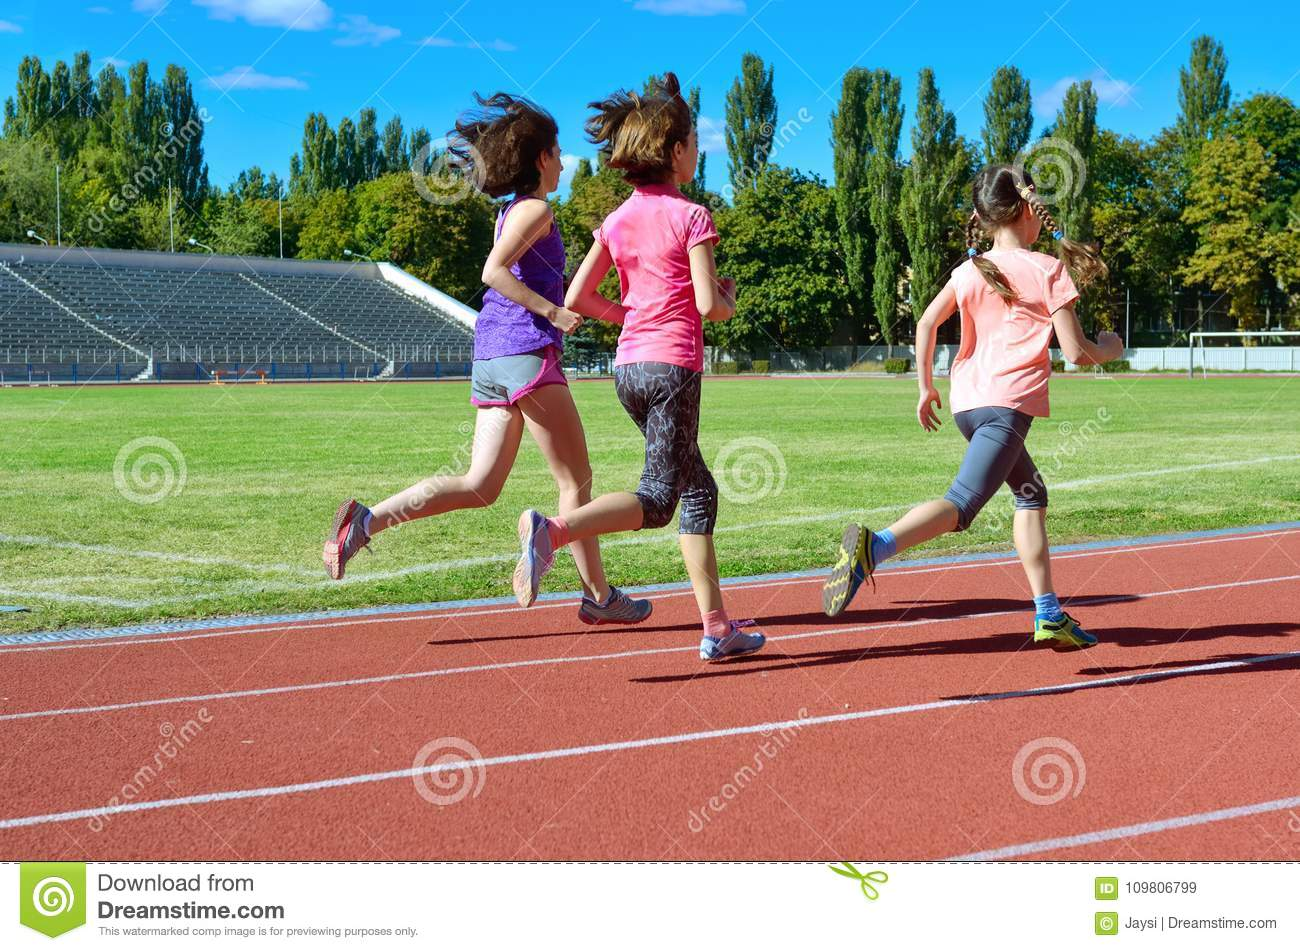 Family sport and fitness, happy mother and kids running on stadium track outdoors, children healthy lifestyle concept